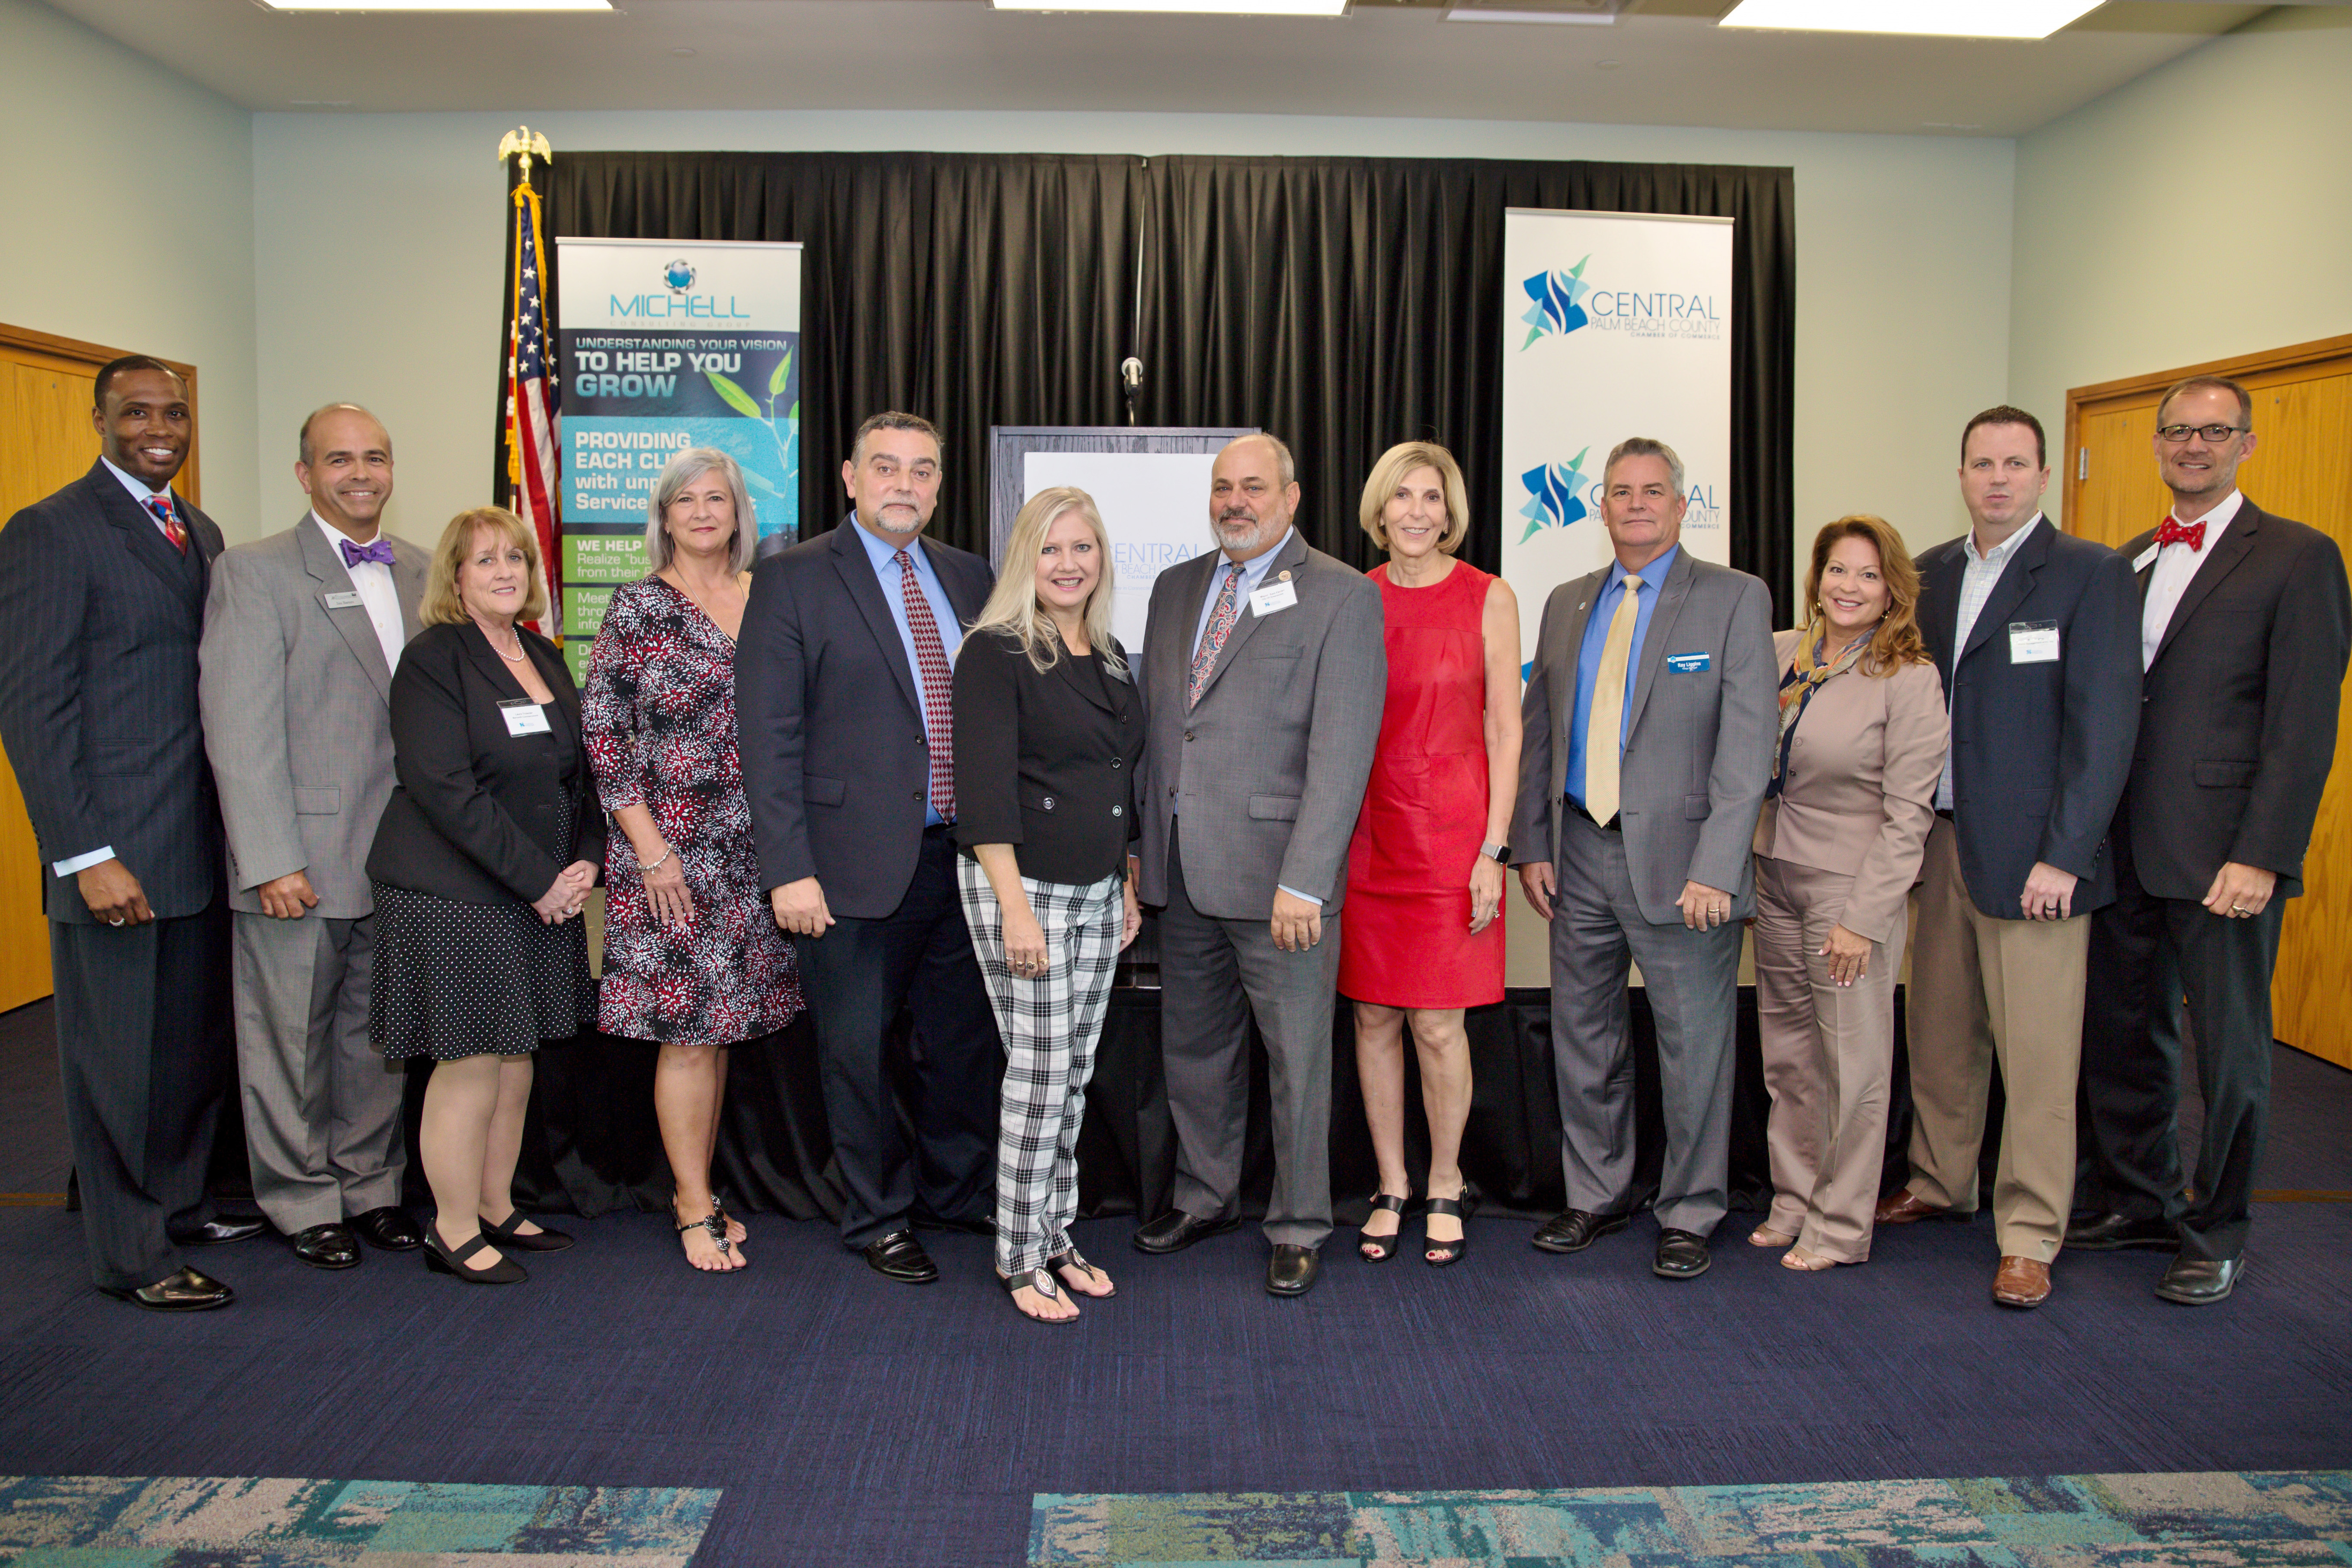 Central Chamber Of The Palm Beaches